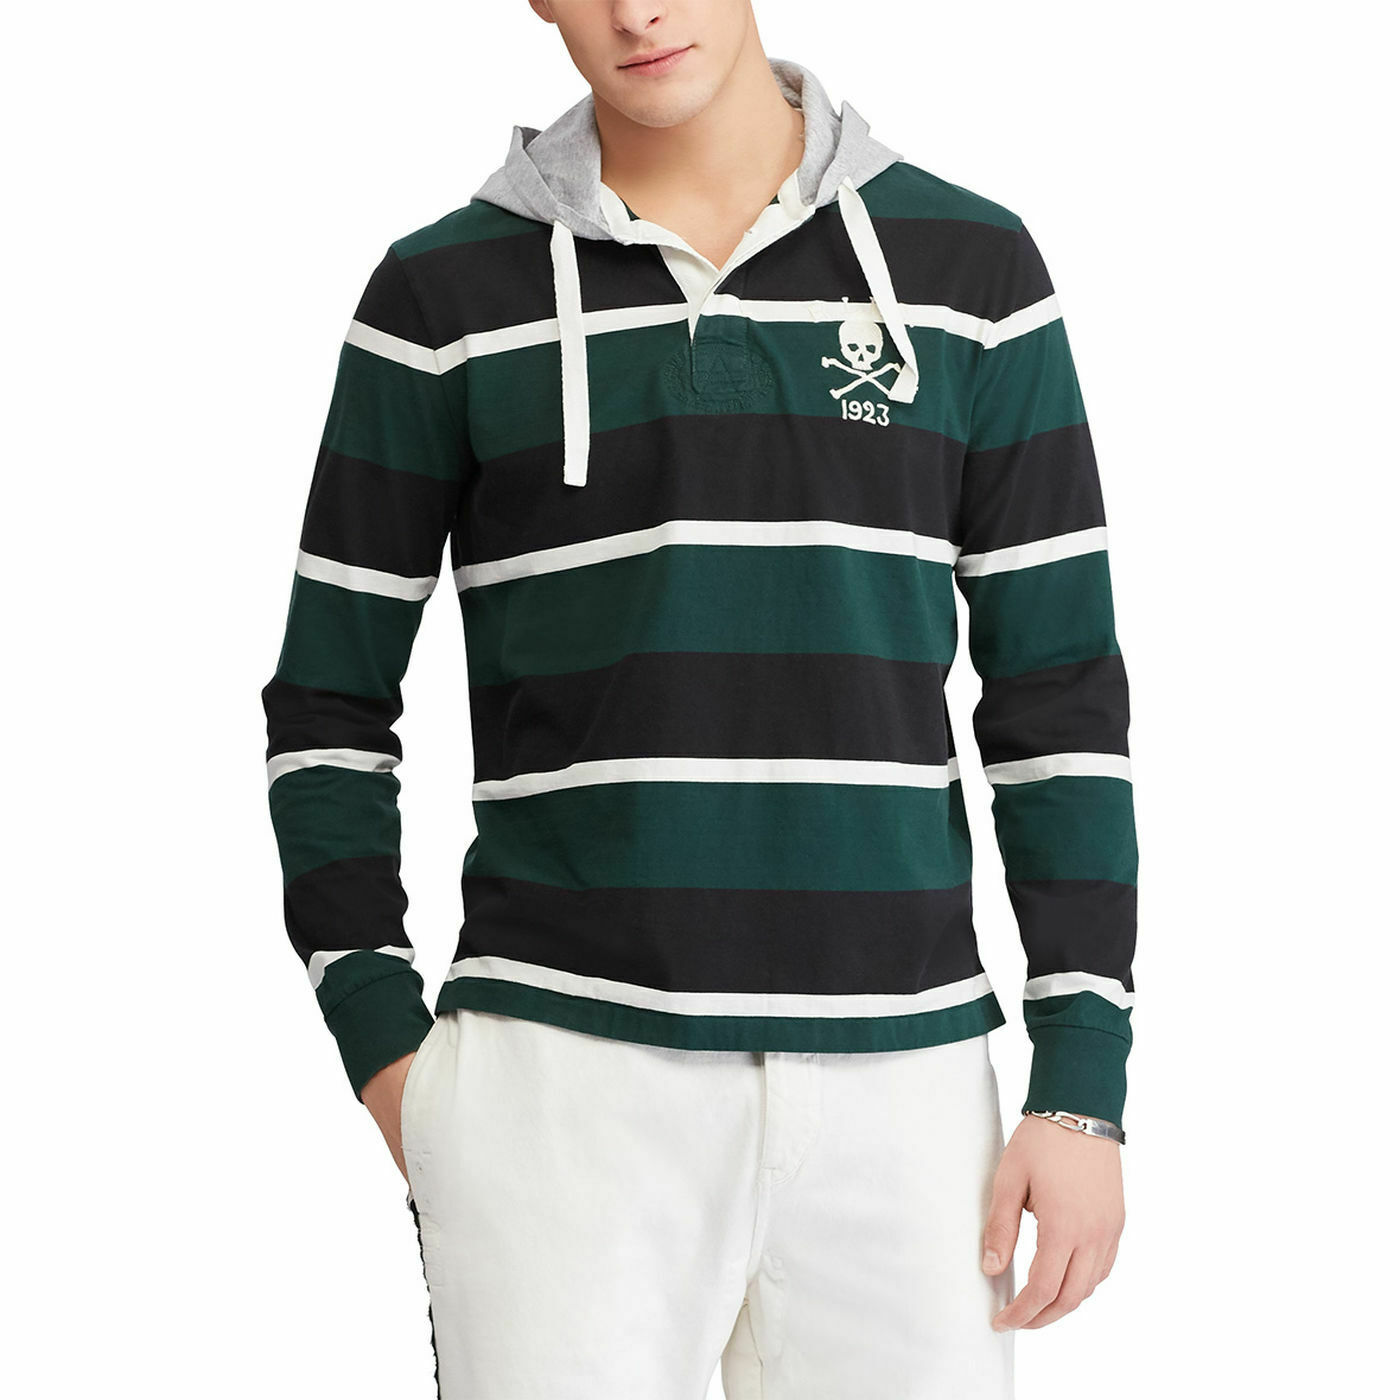 New Polo Ralph Lauren Cotton Hooded Rugby Top Hoodie Sweatshirt XL sweater jeans